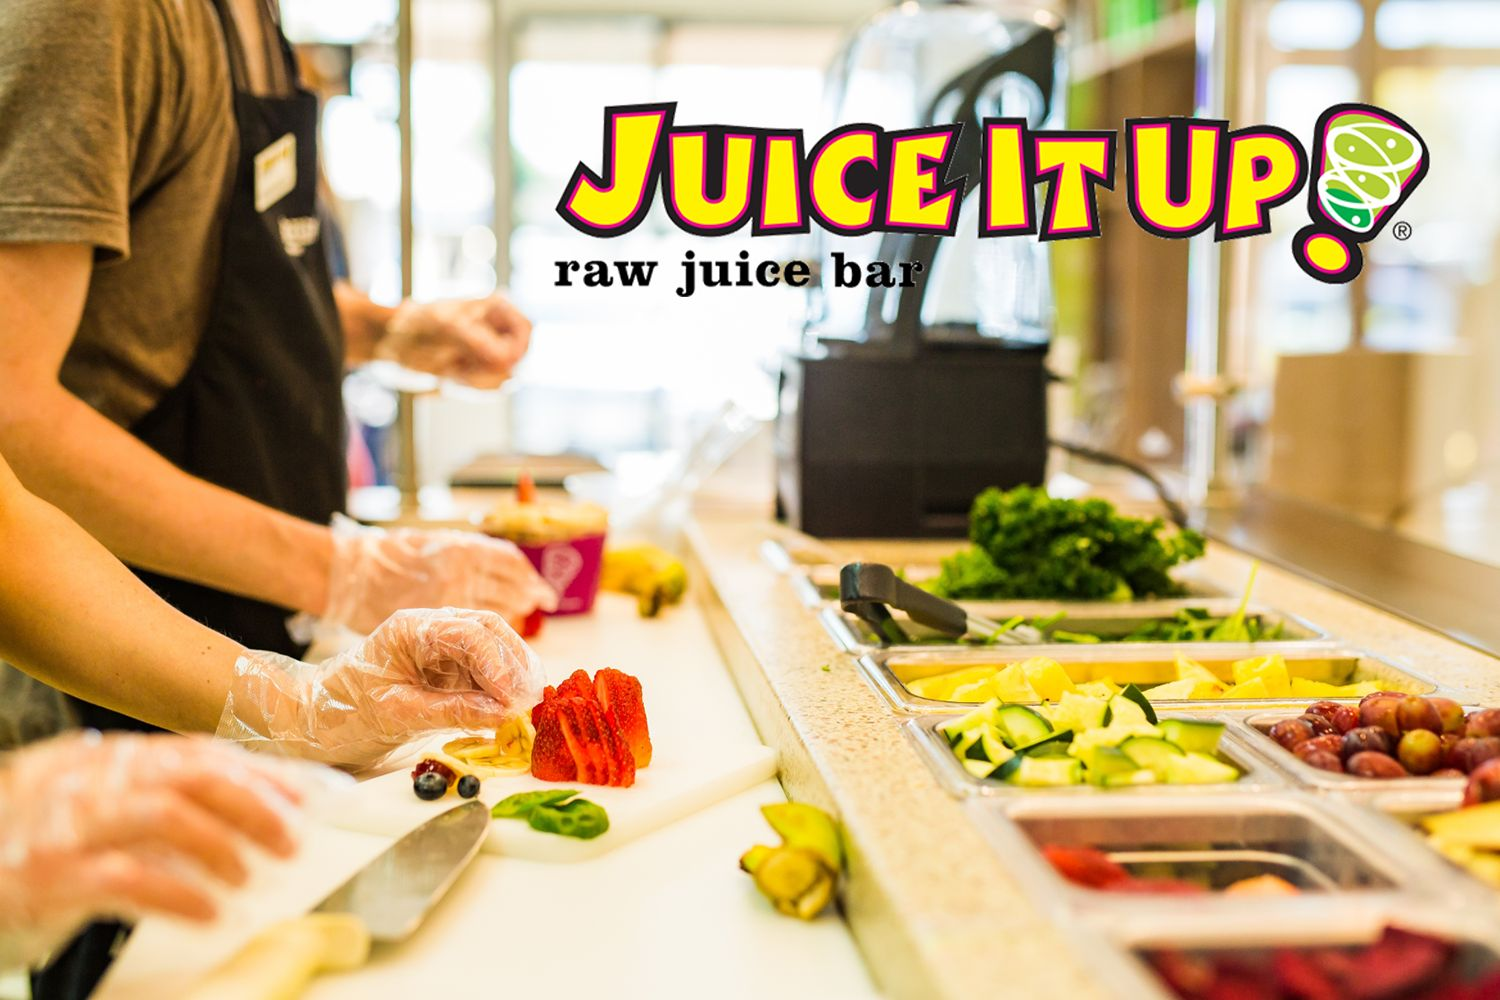 Juice It Up! Named a Top Food Franchise by Entrepreneur Magazine